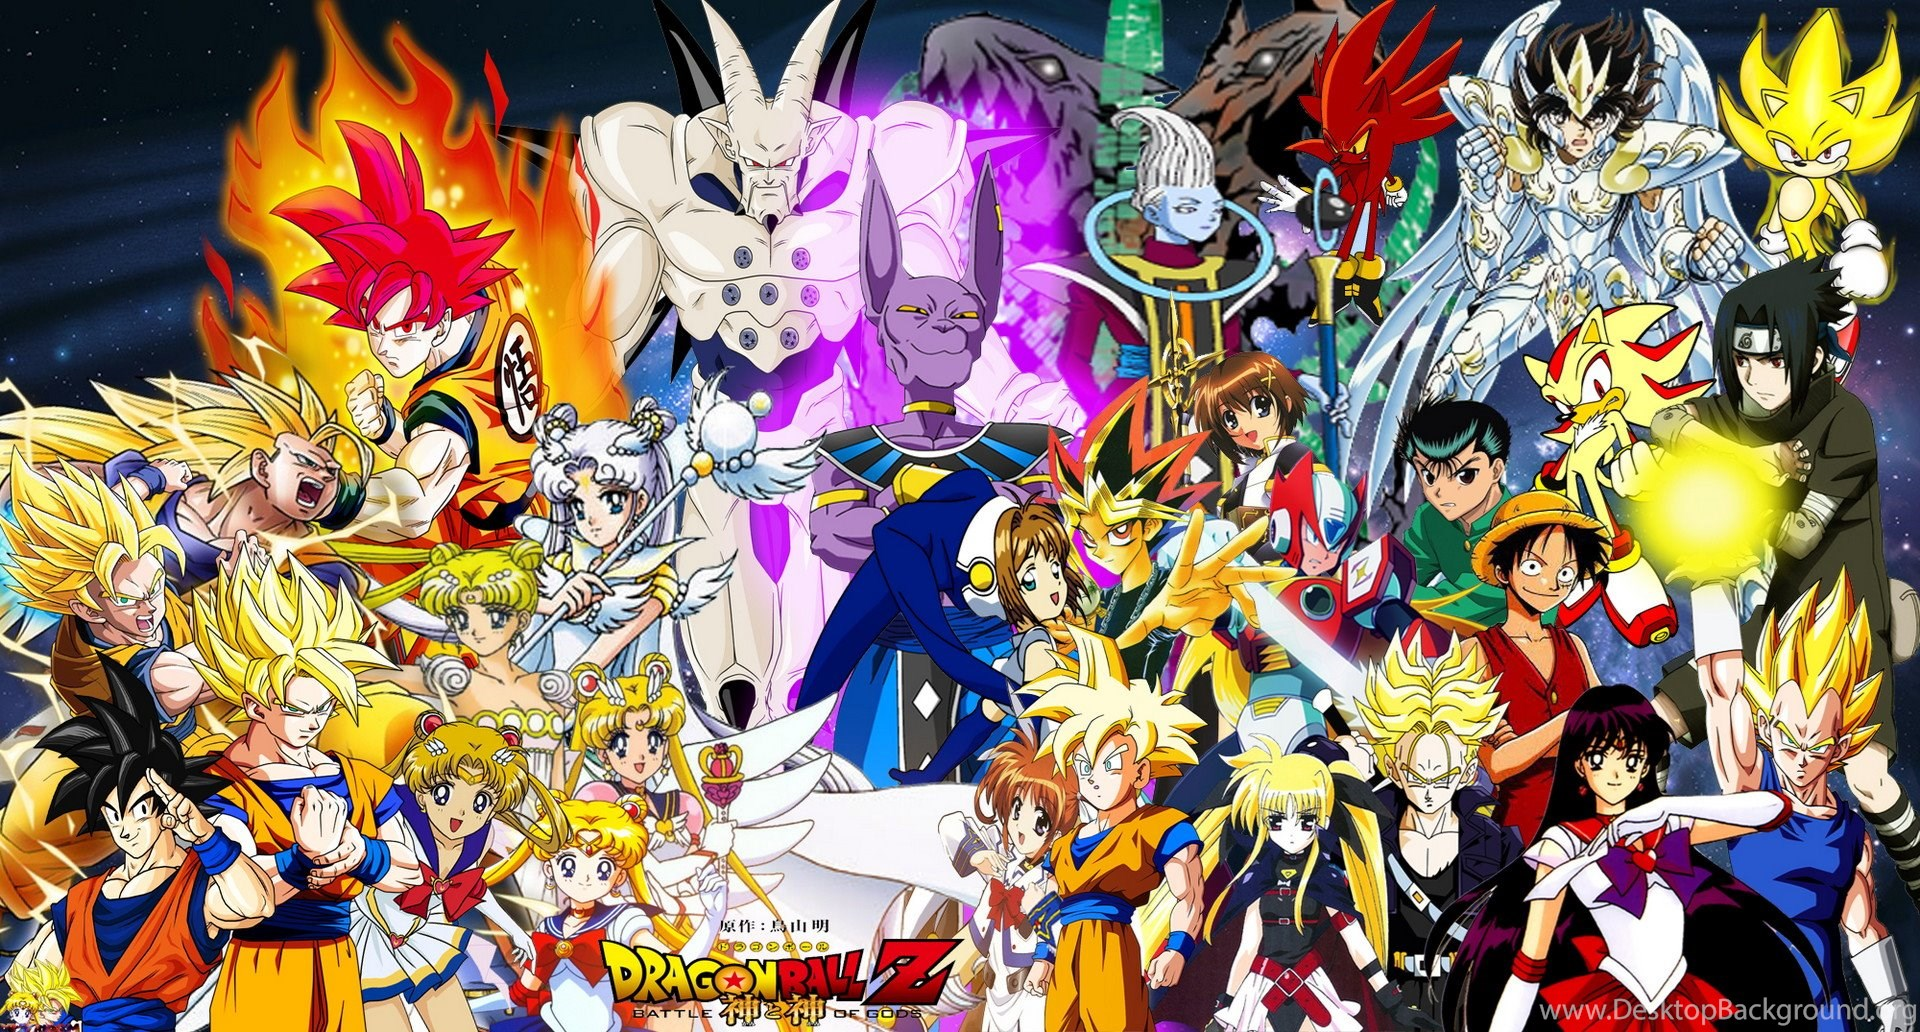 Dragon Ball Z Wallpapers Hd Wallpapers Day Desktop Background